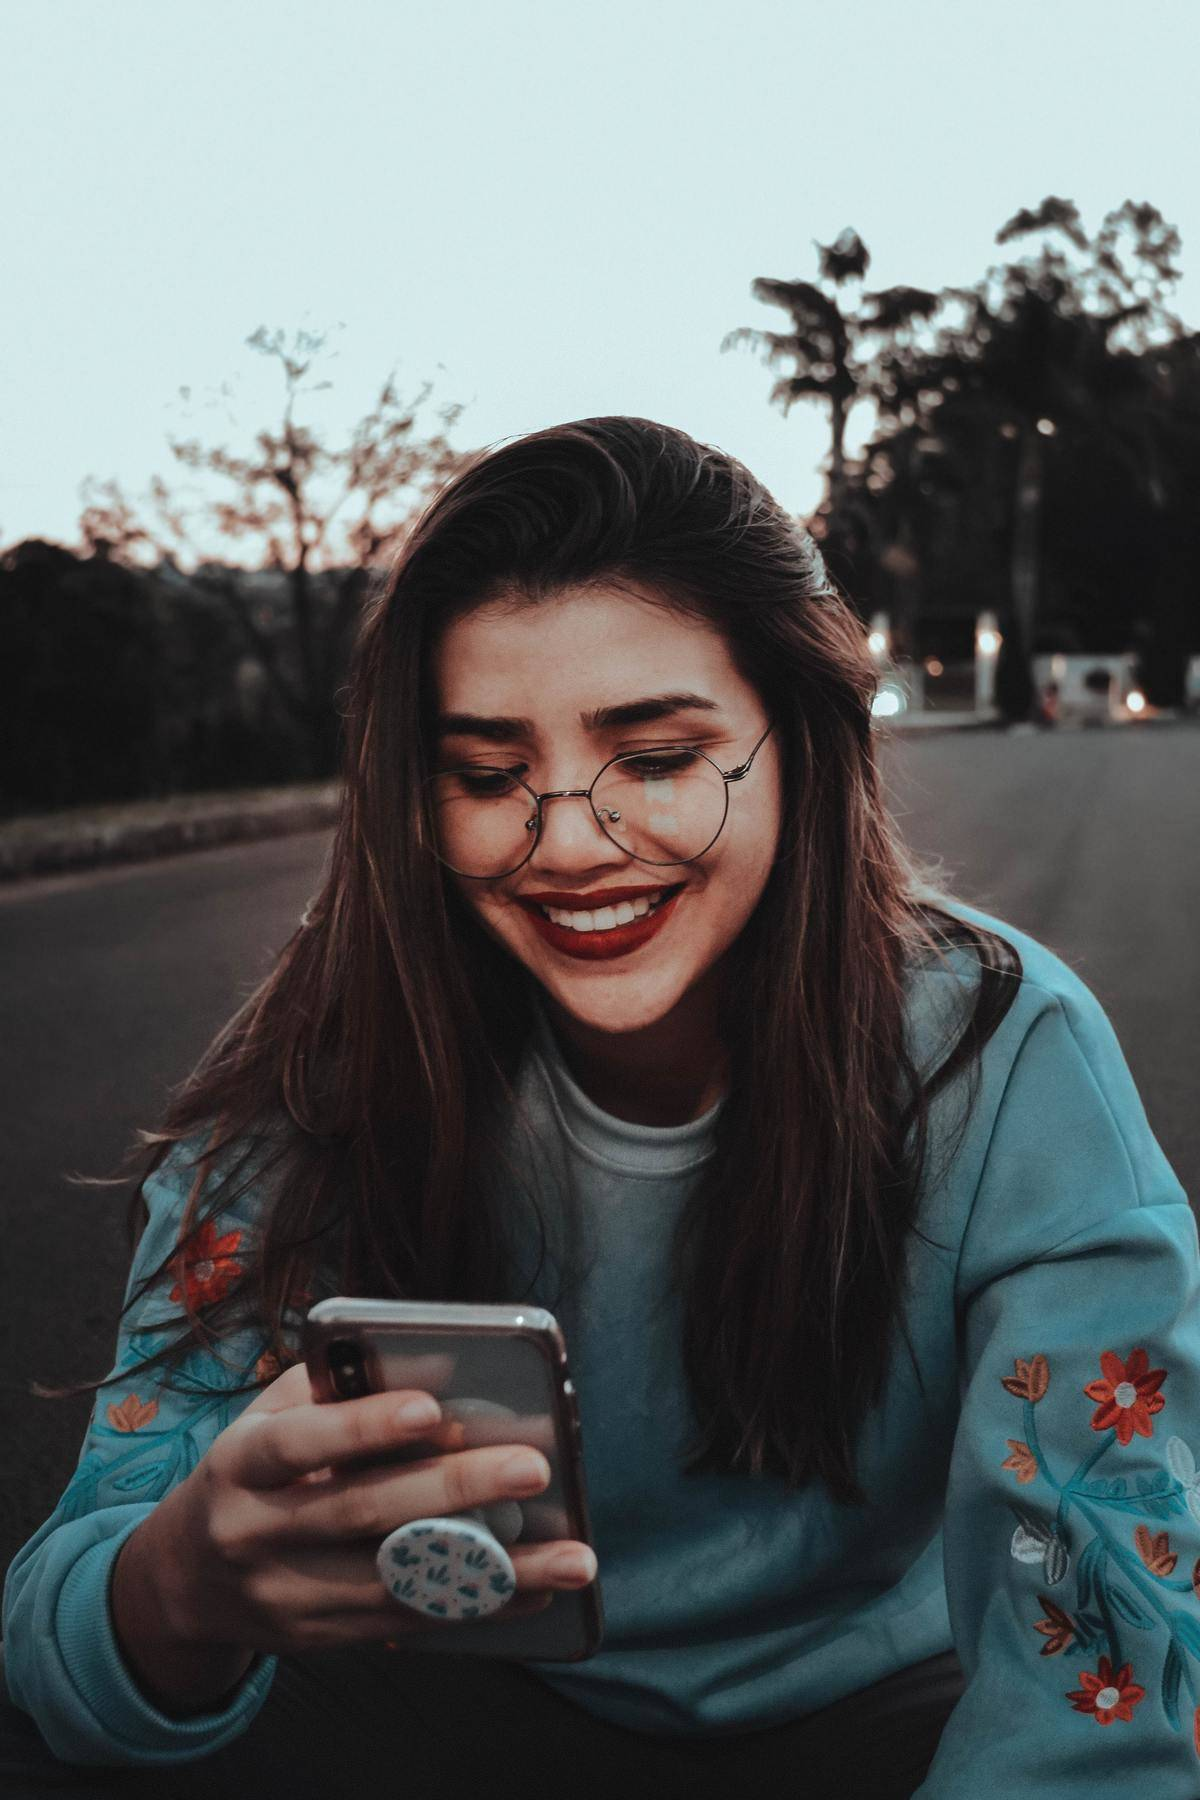 a woman smiling at her phone that she's holding